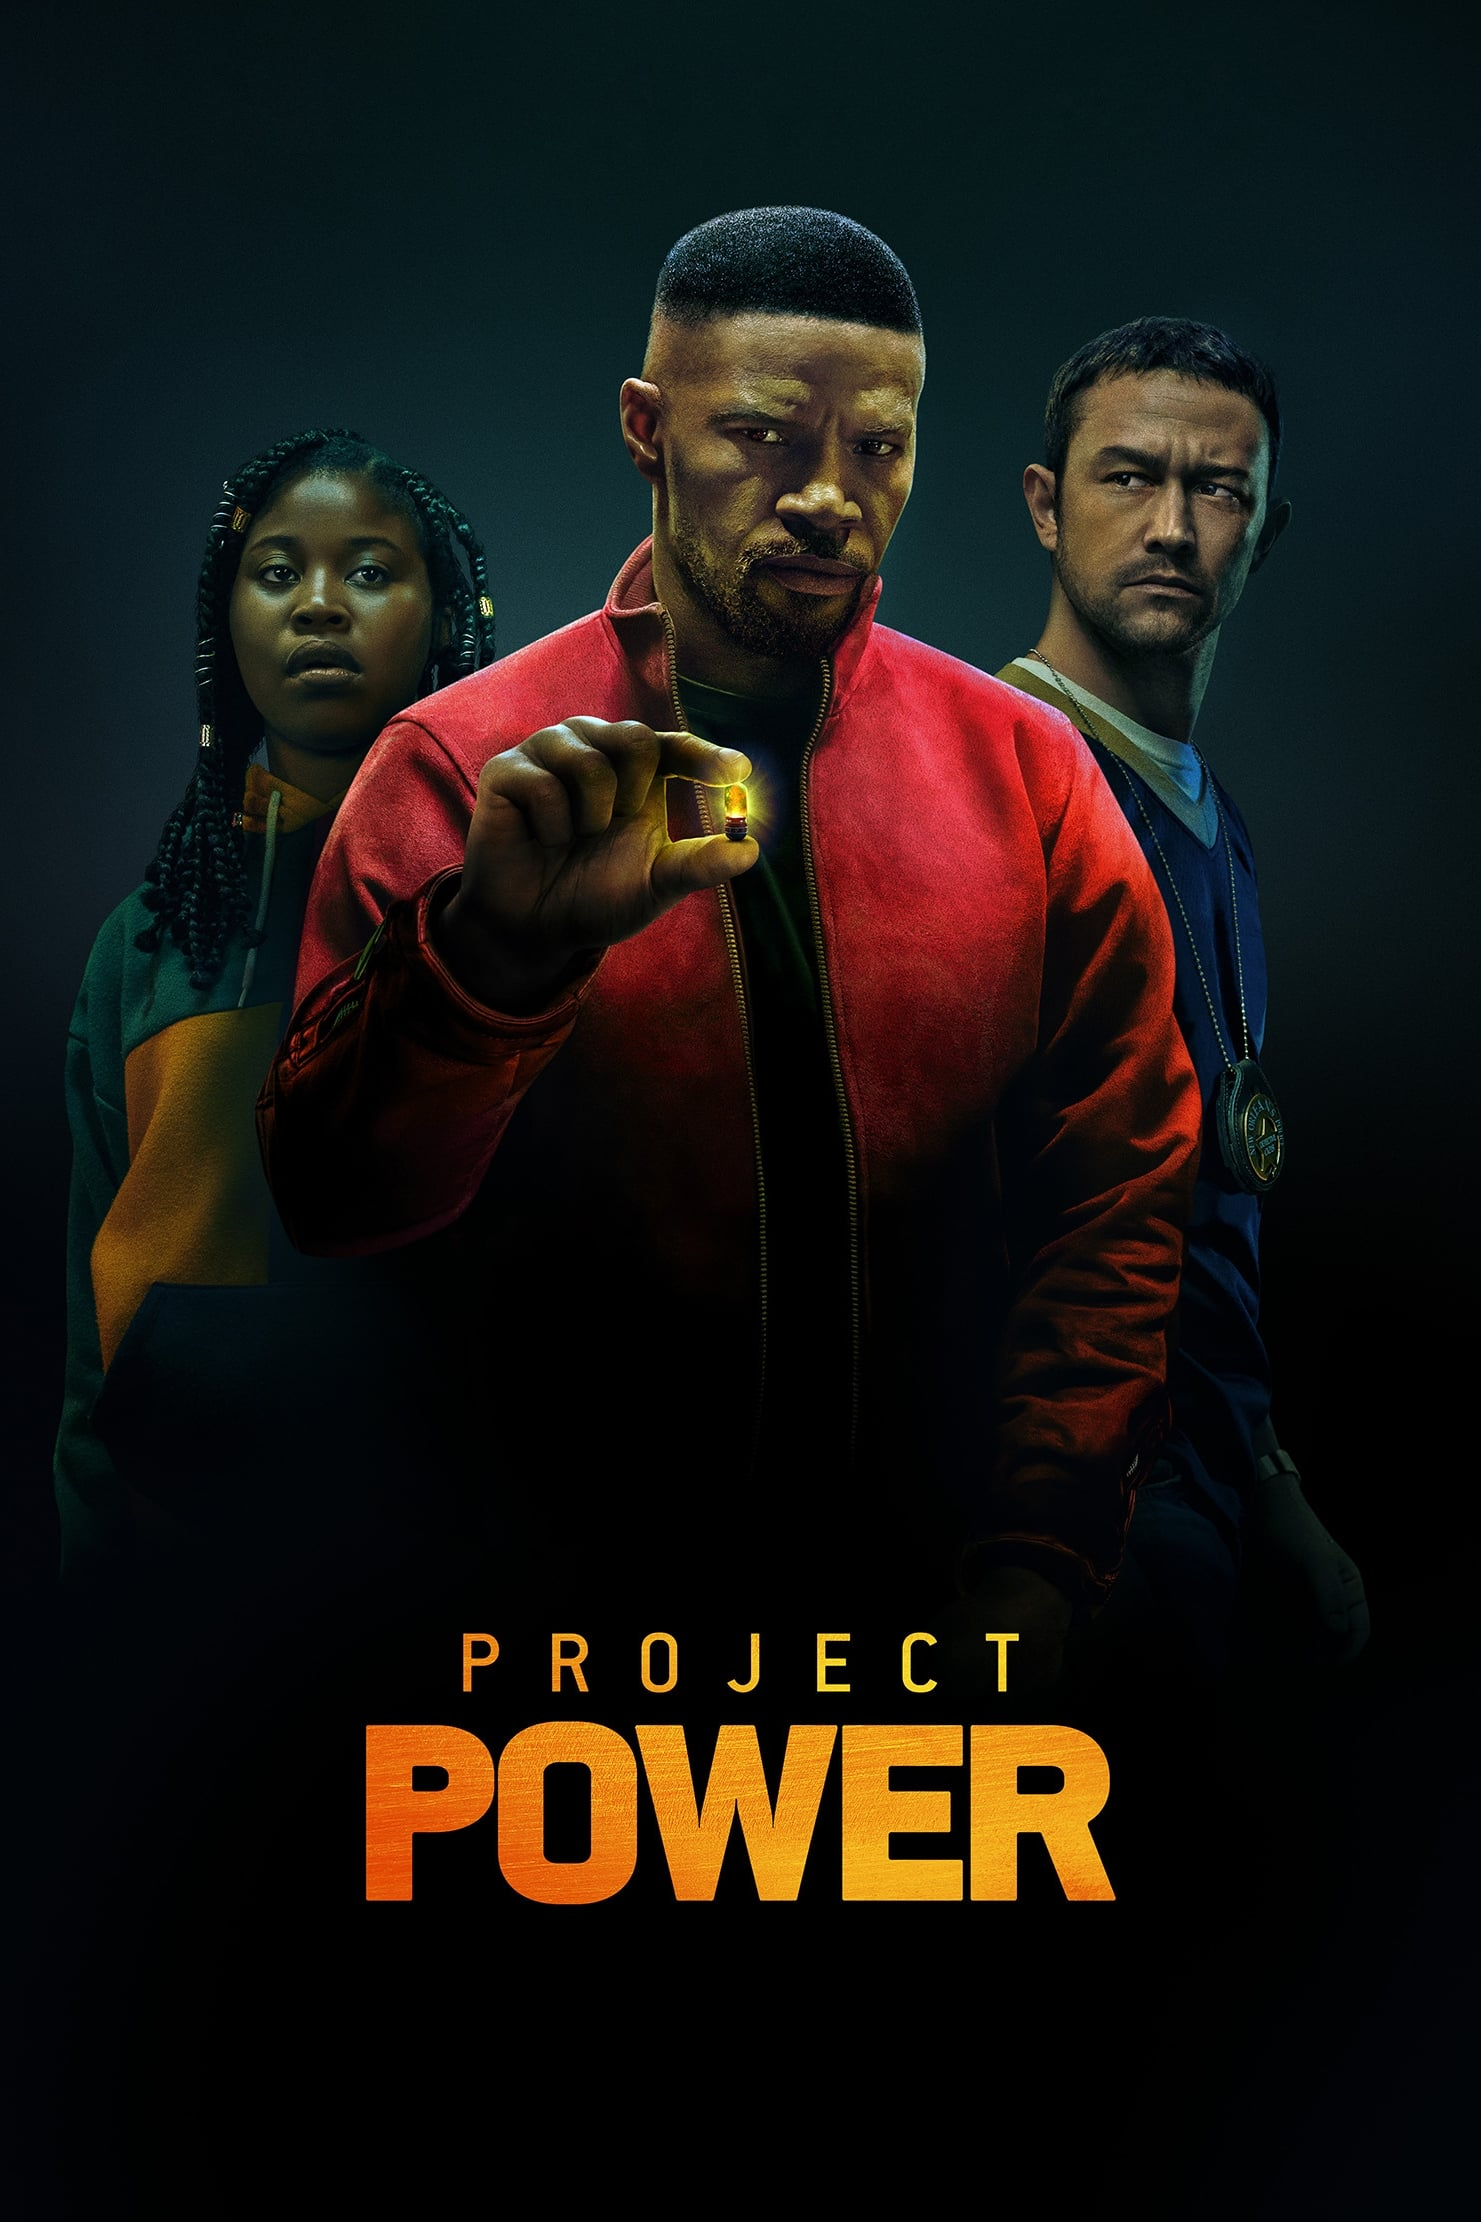 Project-Power-2020-6467